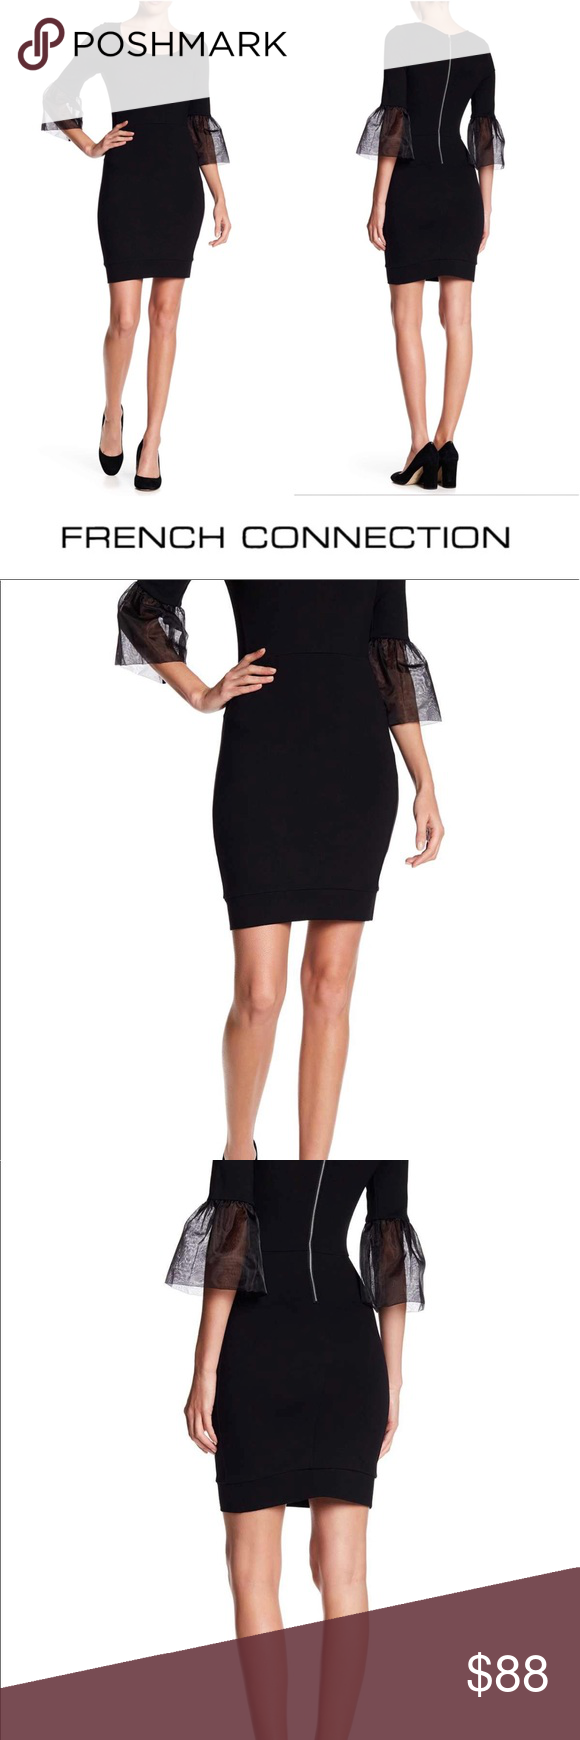 3100838e186 French Connection Lula Bell Sleeve Dress - Black French Connection Lula Bell  Is a classic little